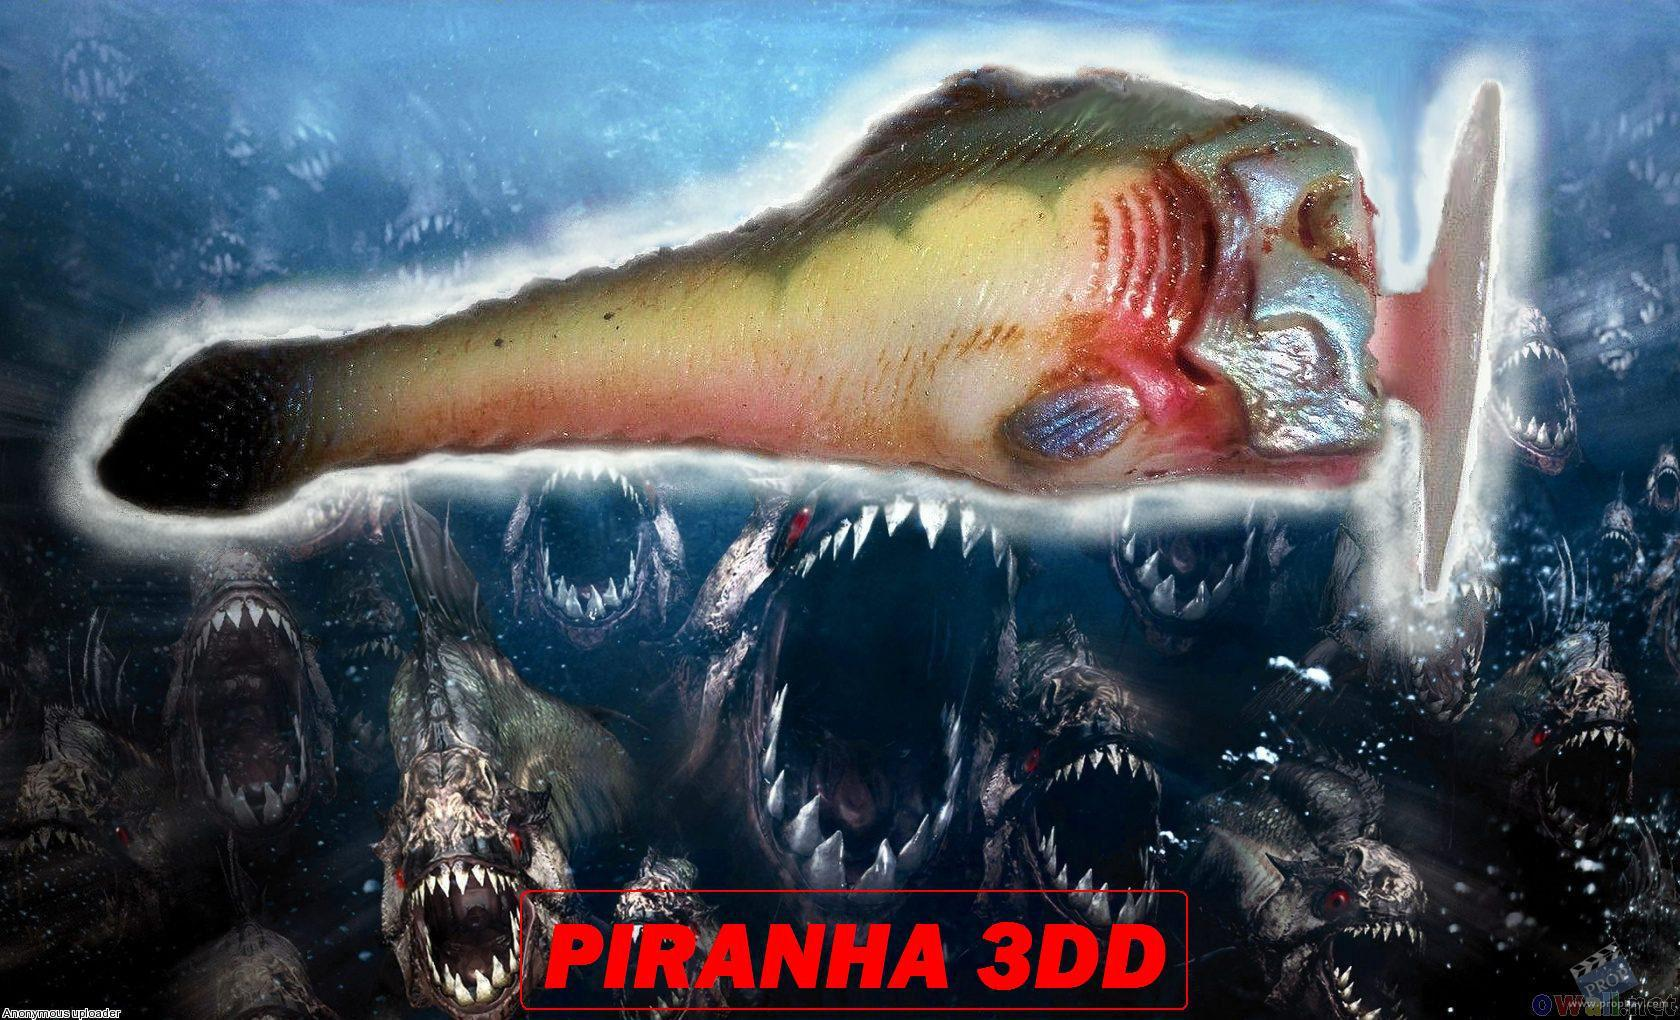 SFX Baby Attack Piranha Movie Prop from Piranha 3DD (2012 ...